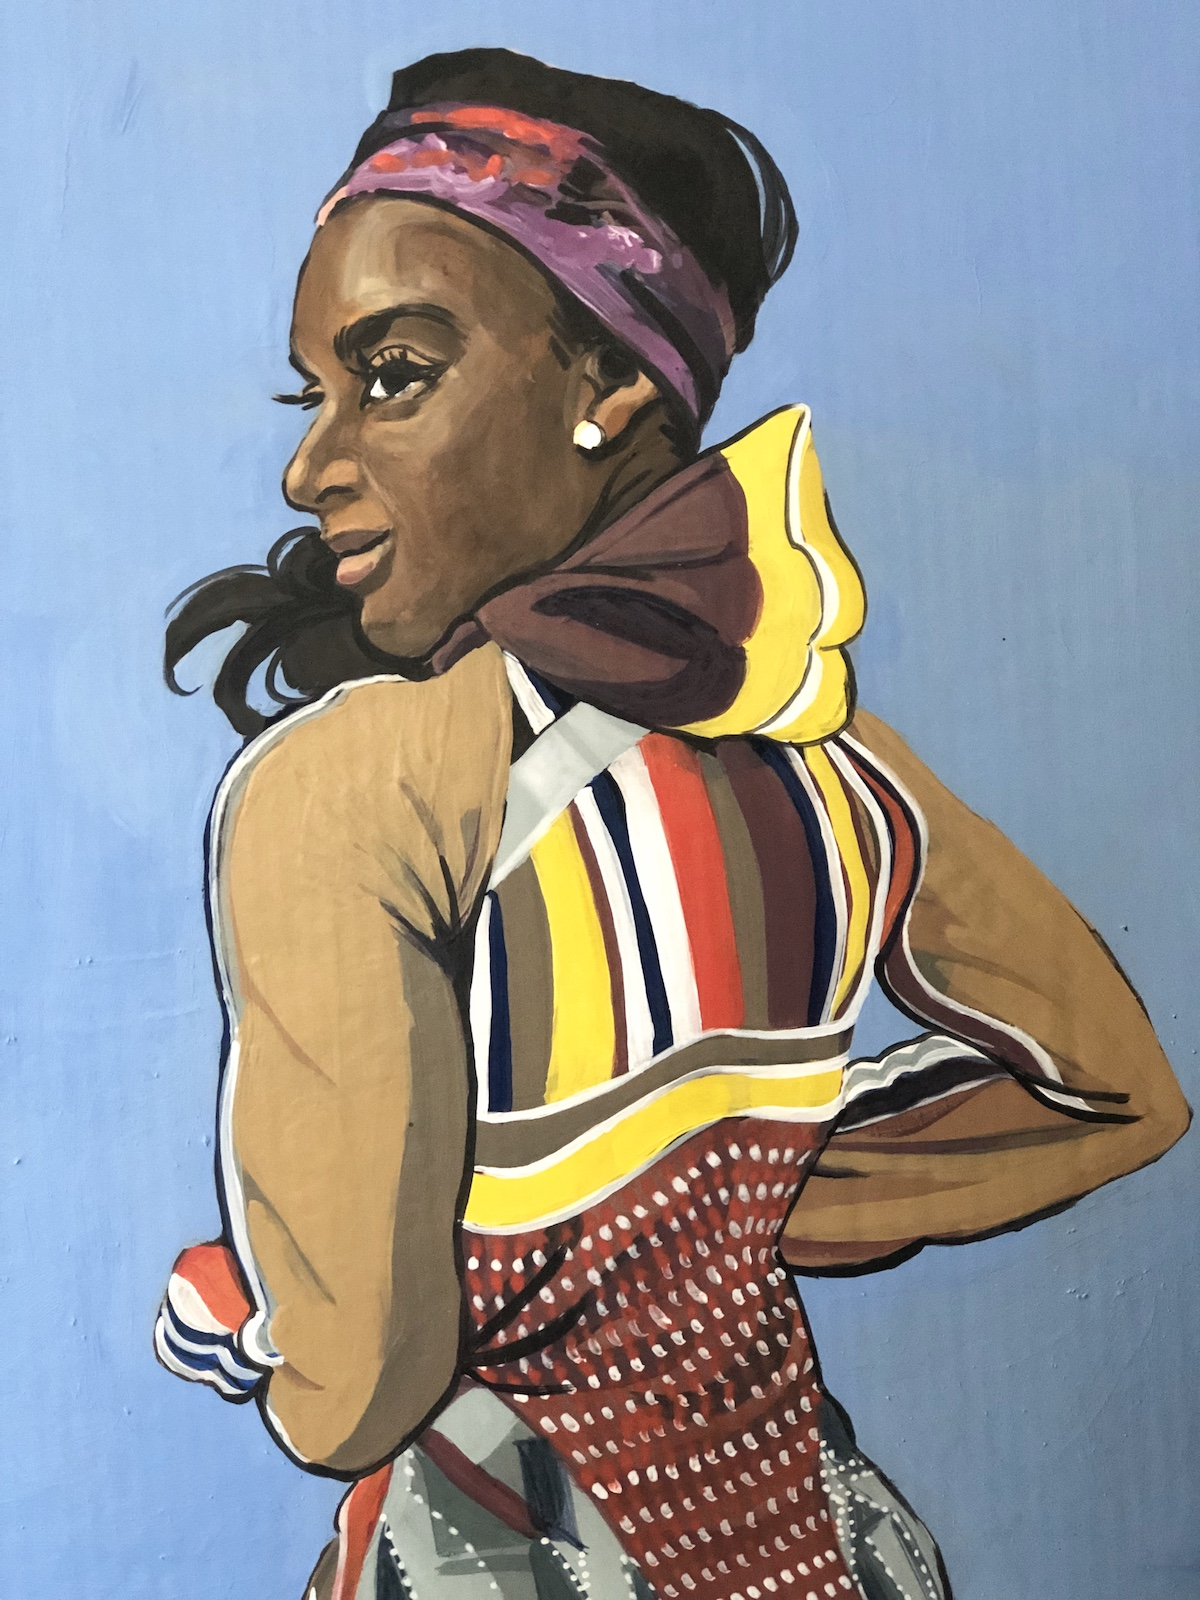 A painting of a person wearing a custom garment